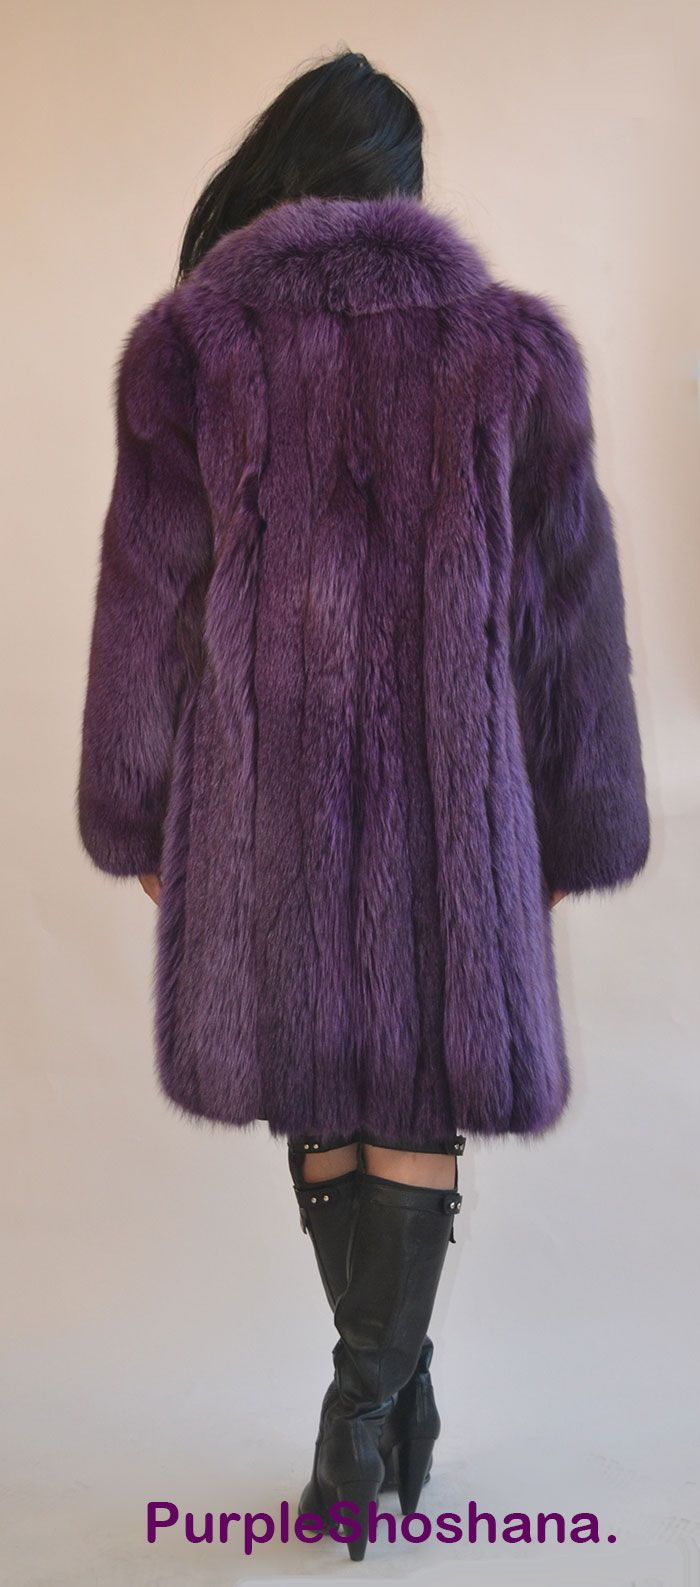 Live lavishly with a decadent rabbit fur coat from Fur Source. These real fur coats are crafted with % genuine rabbit fur in a rainbow of shades.